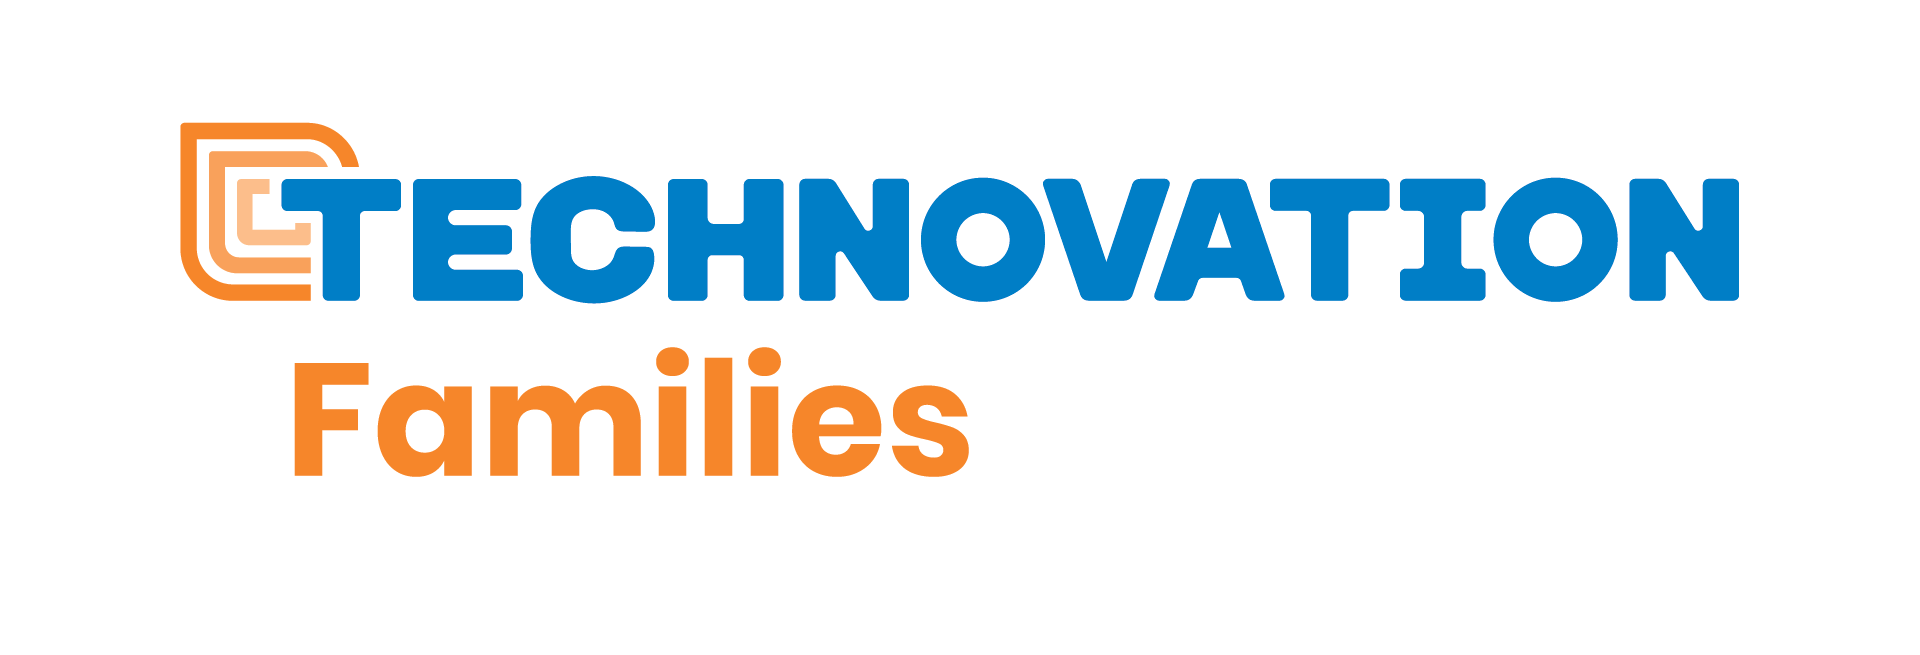 Technovation-Logo_Families-CMYK.png